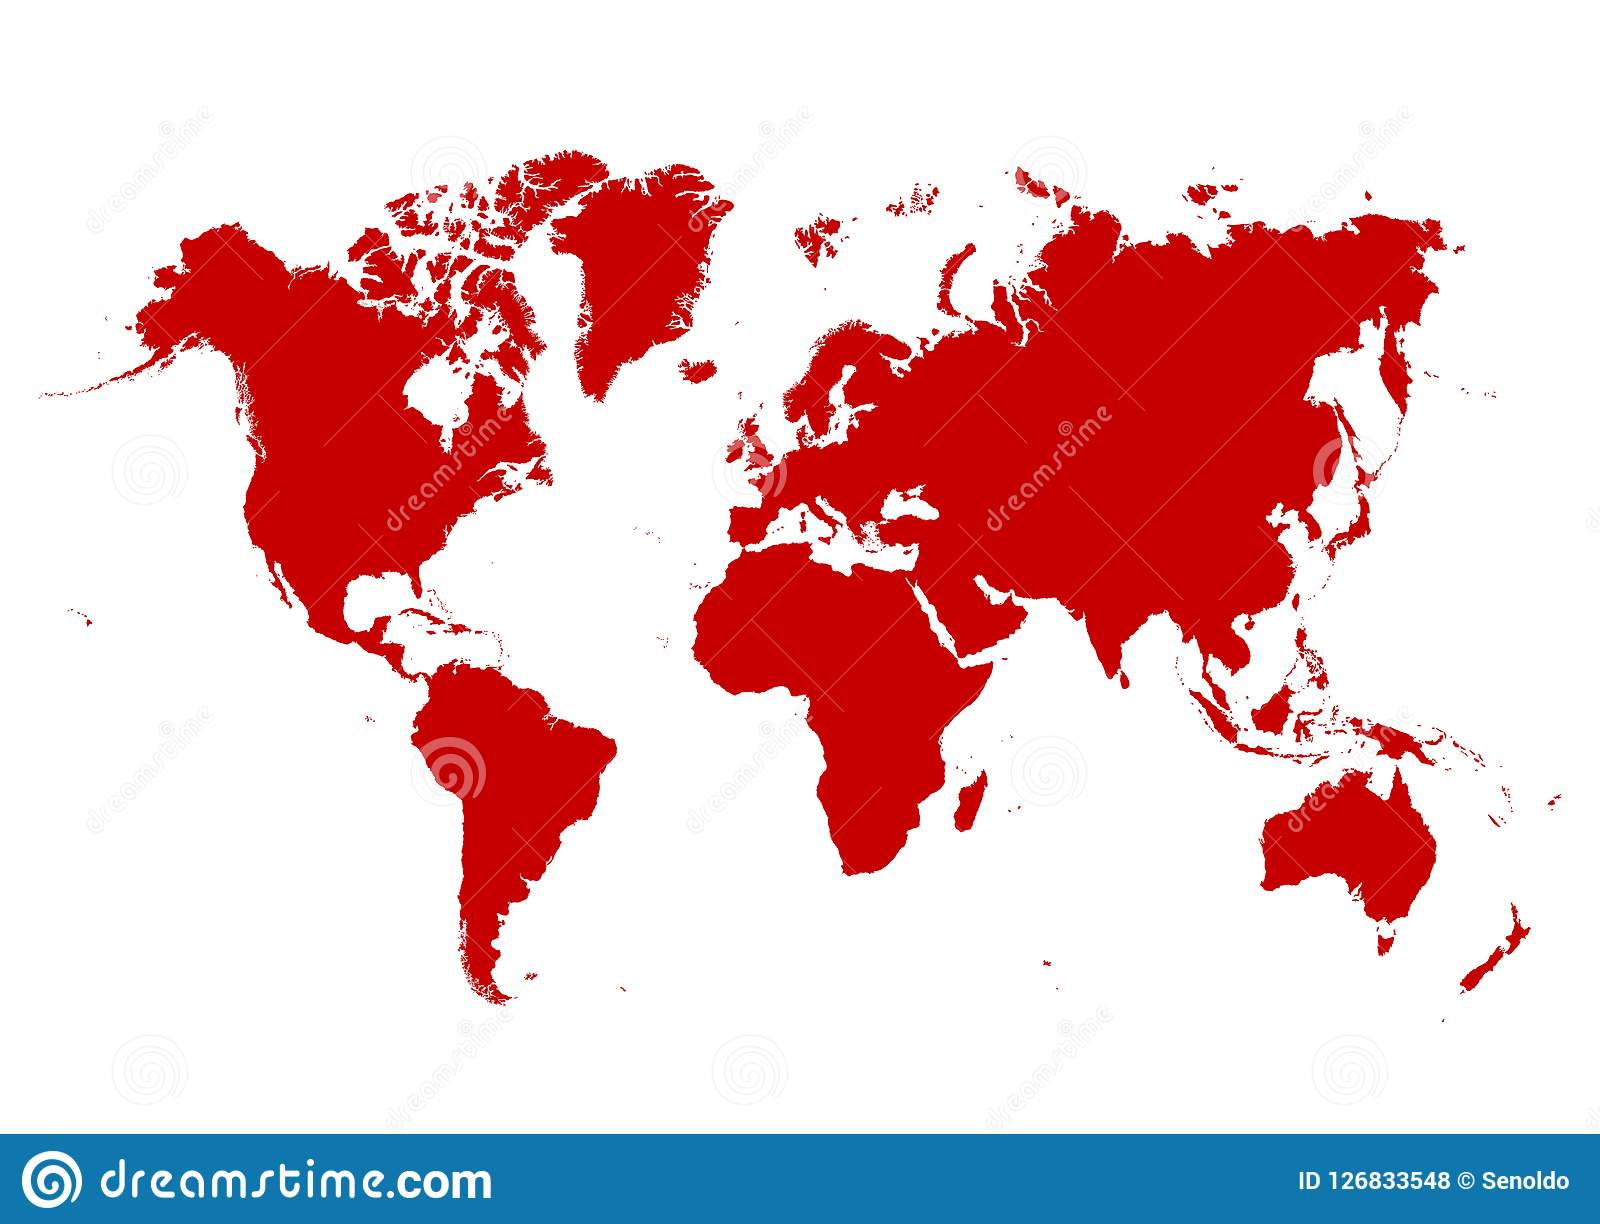 Isolated 2d Map Of The World With Red Continents And White